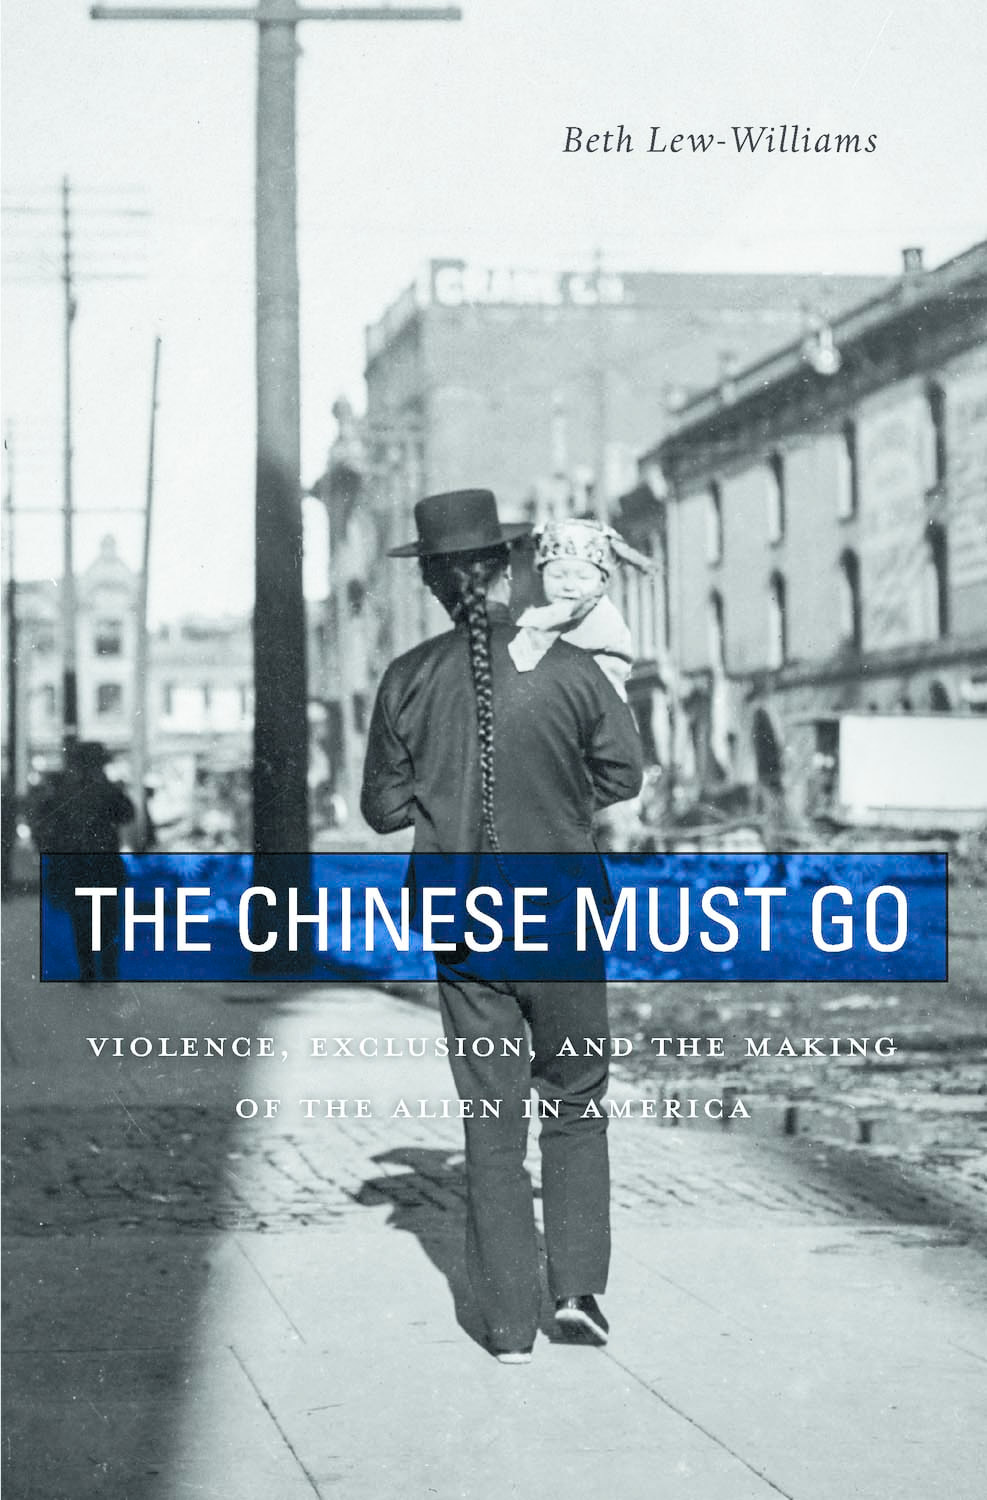 The Chinese Must Go: Violence, Exclusion, and the Making of the Alien in America by Beth Lew-Williams